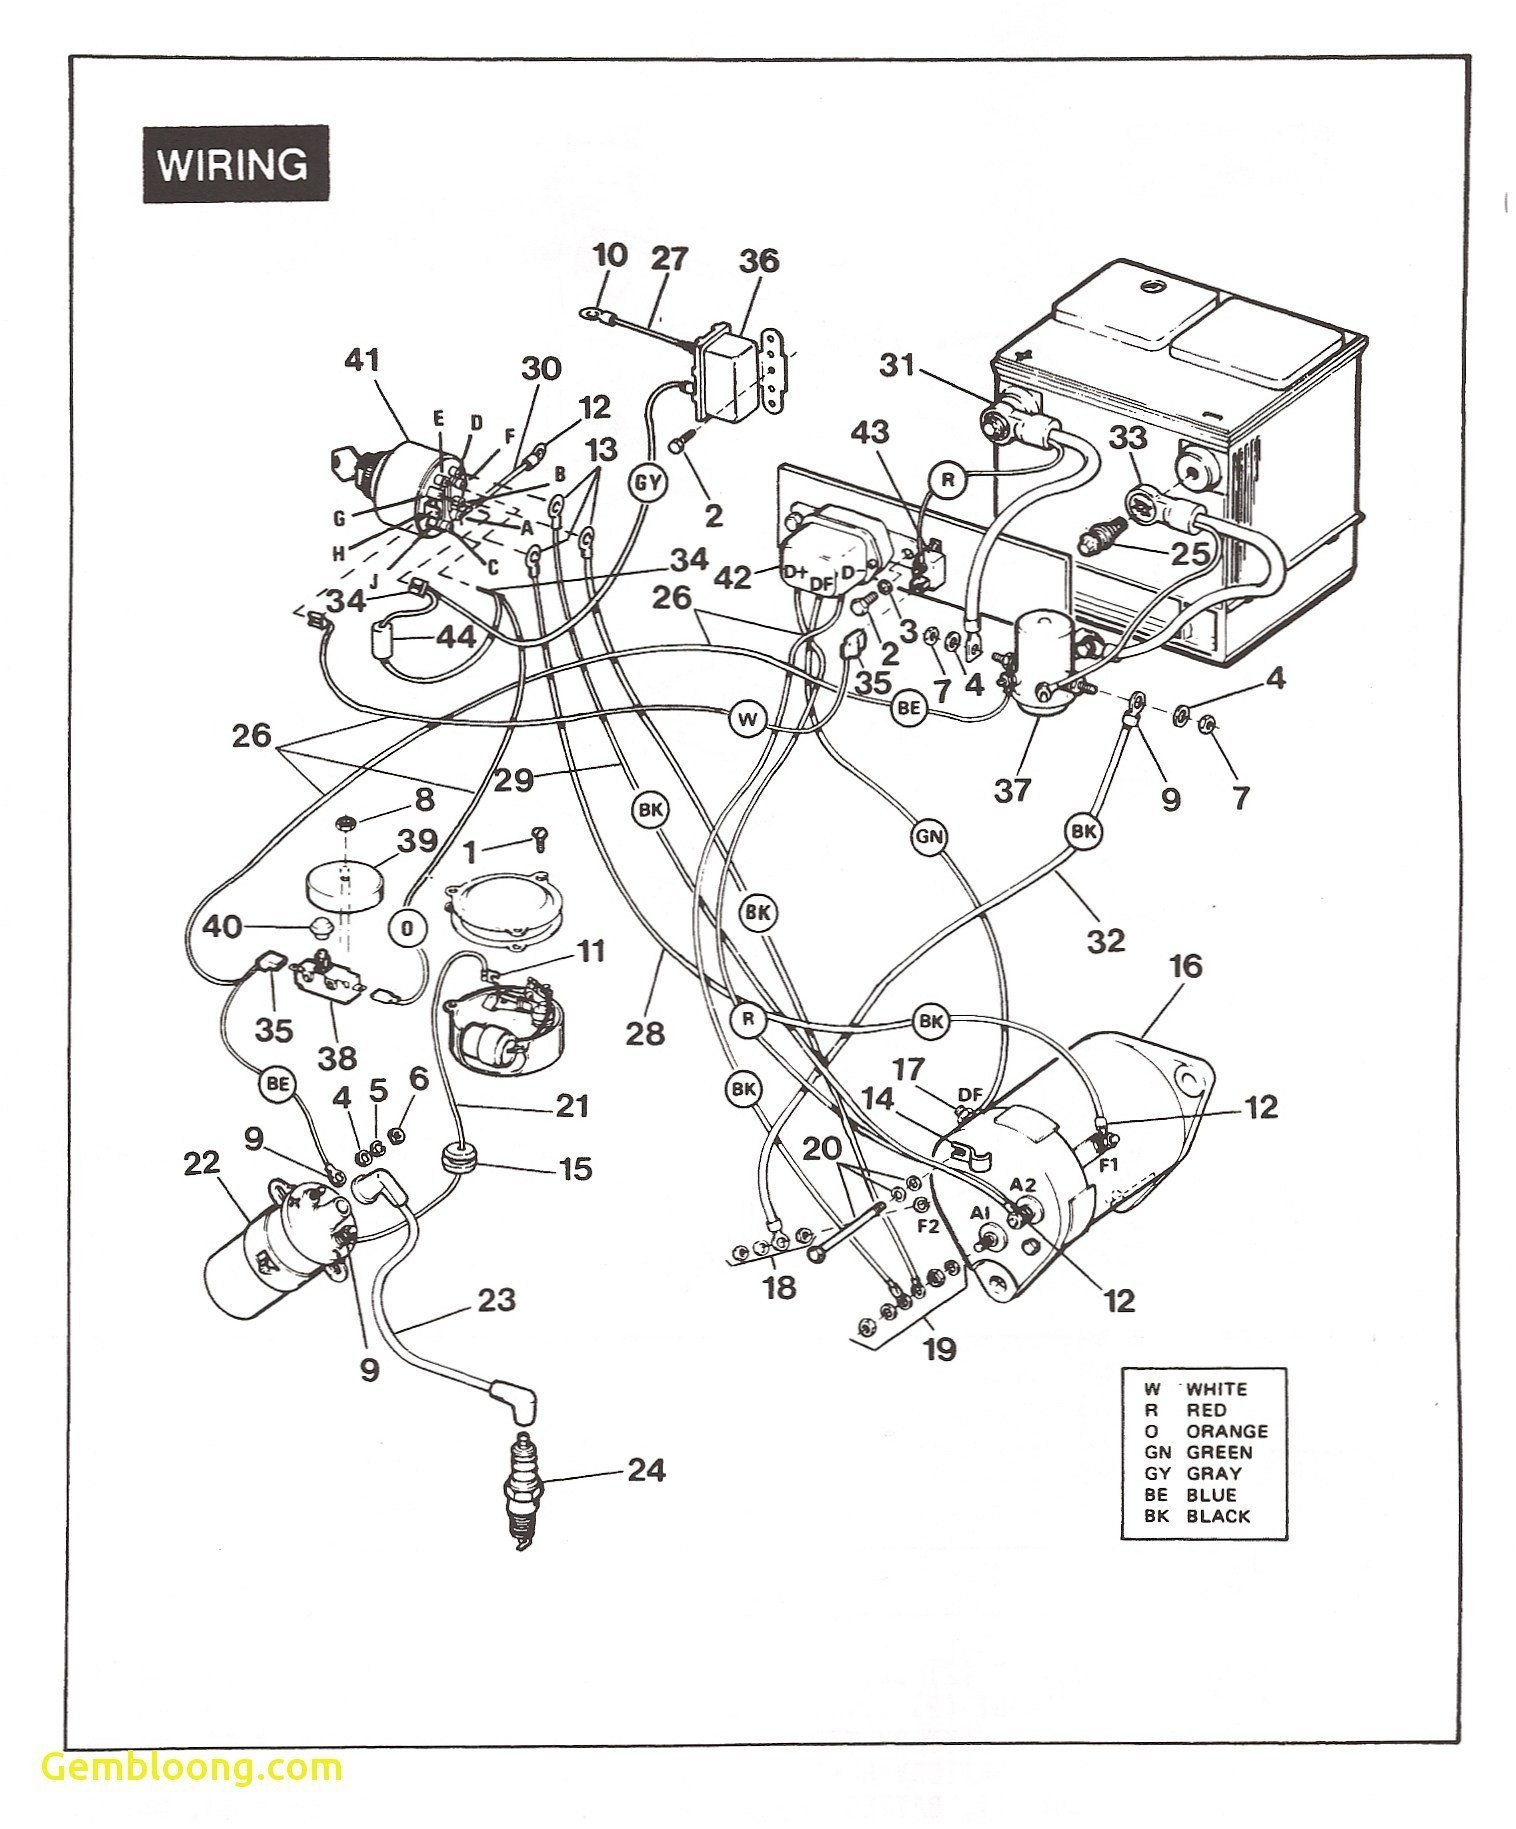 Columbia Par Car Wiring Diagram 2010 Club Car Wiring Diagram